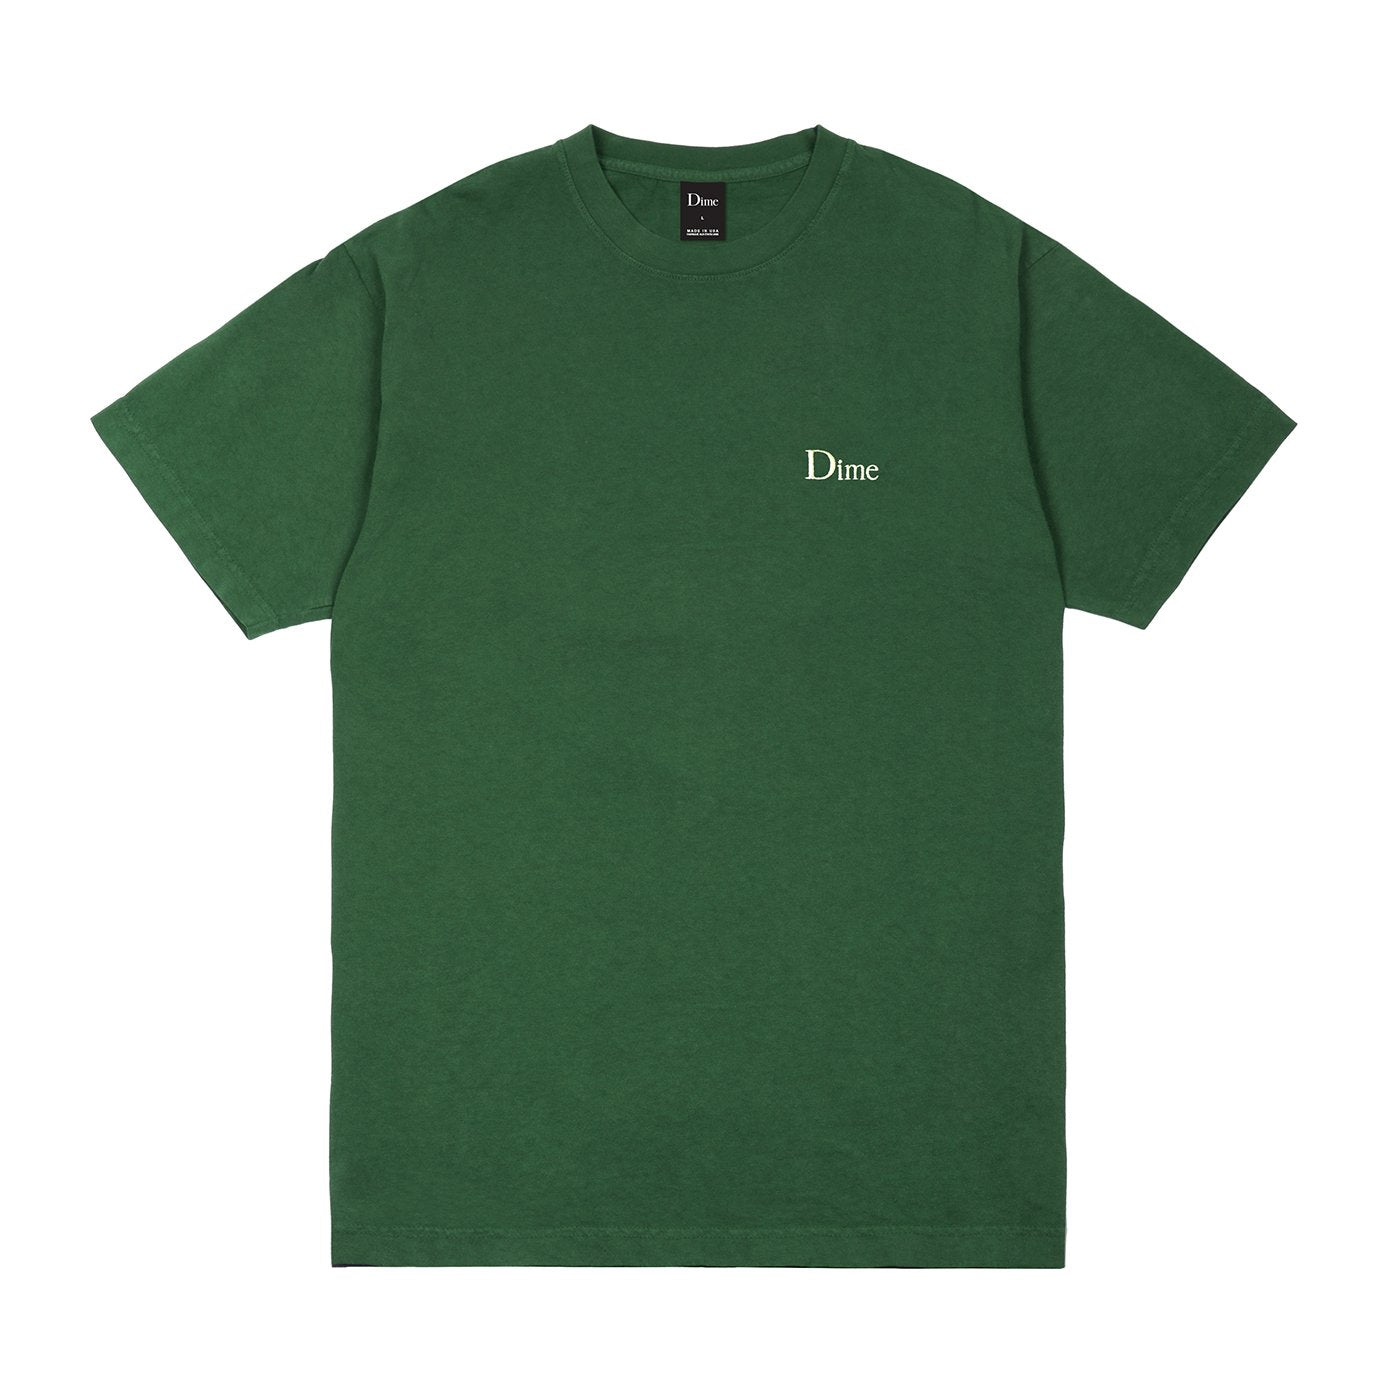 Dime Classic Embroidered Tee Product Photo #1